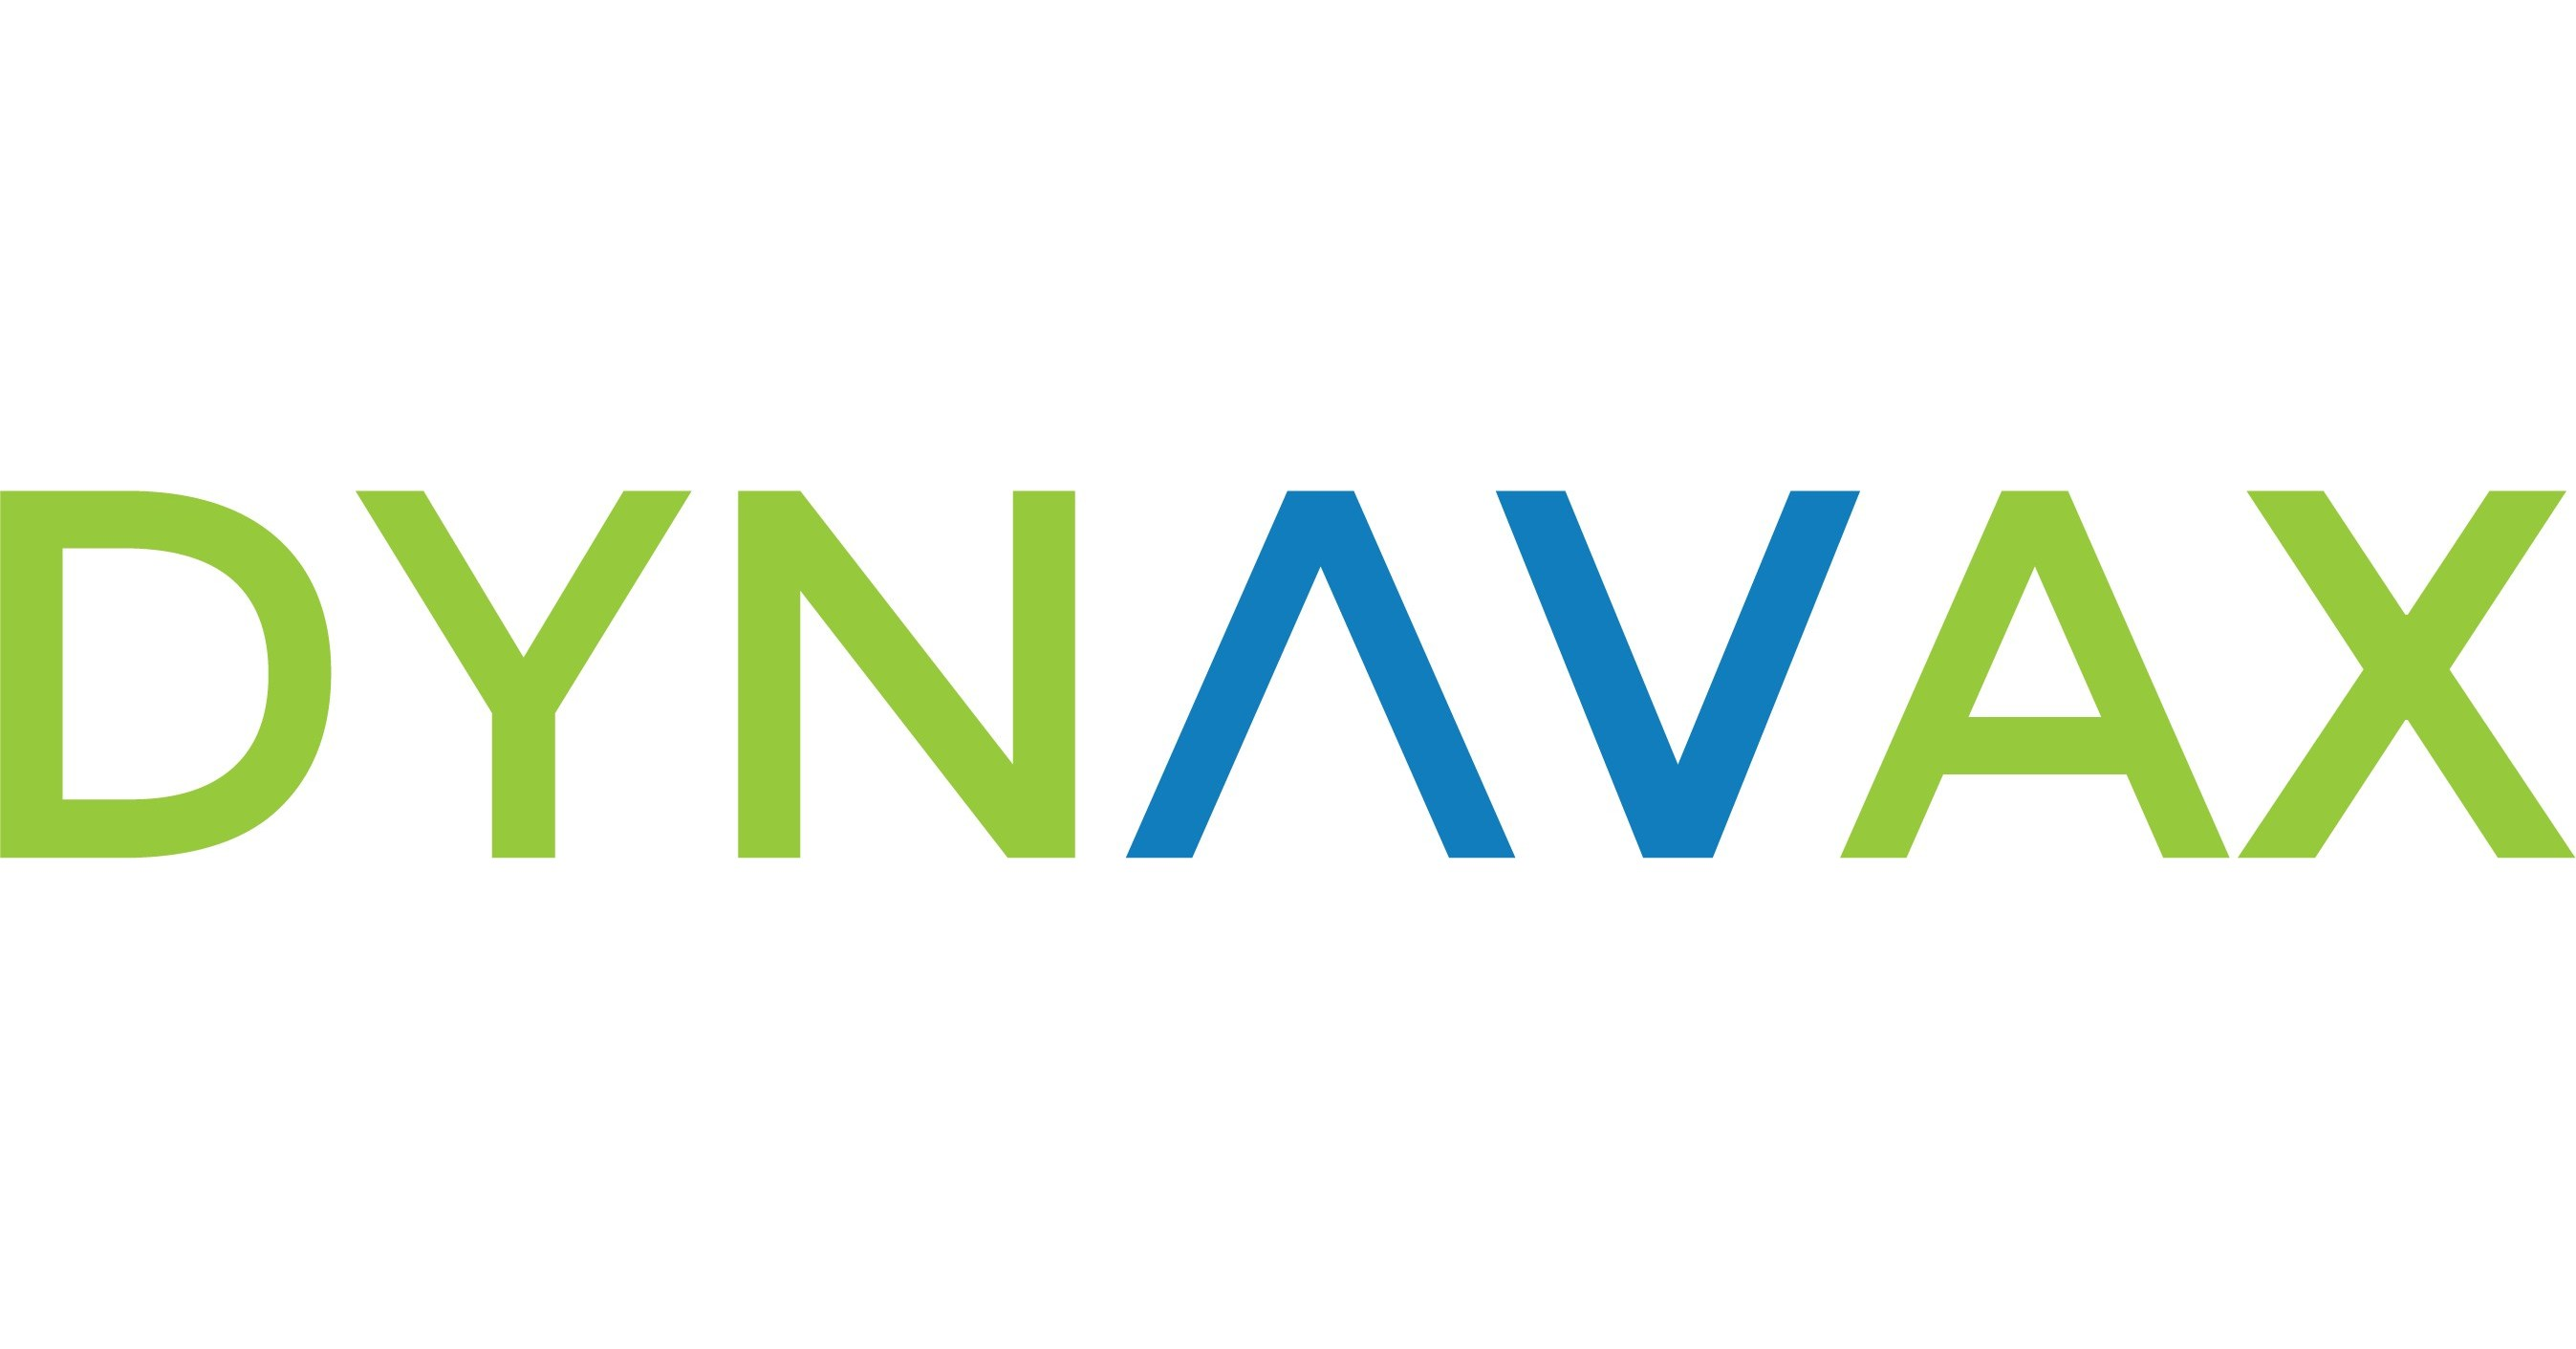 Dynavax Announces Fourth Quarter and Full Year 2020 Financial Results